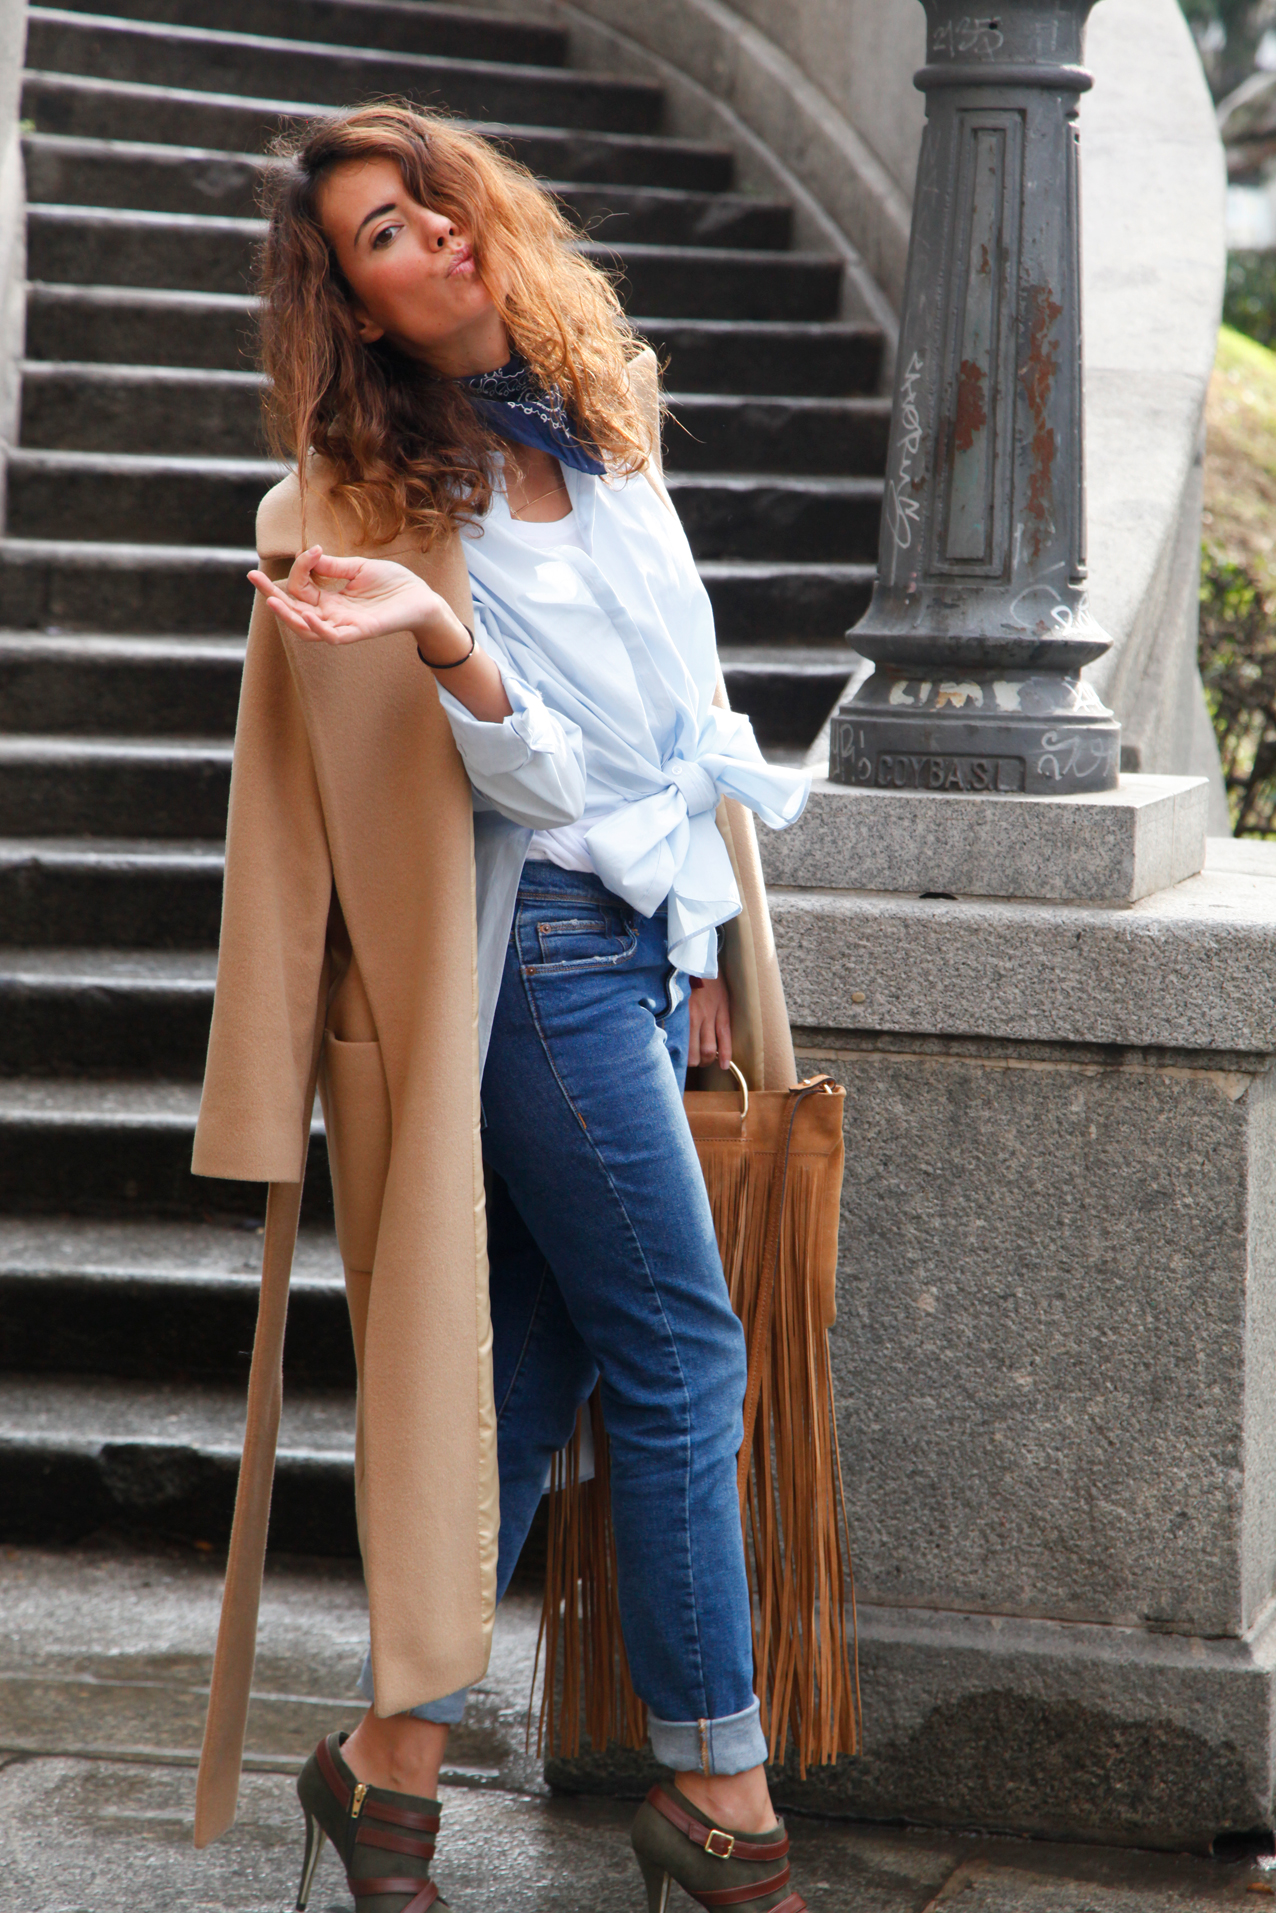 long shirt, pussy shirt, working look. elixa, camel coat, fashion blog, cool lemonade